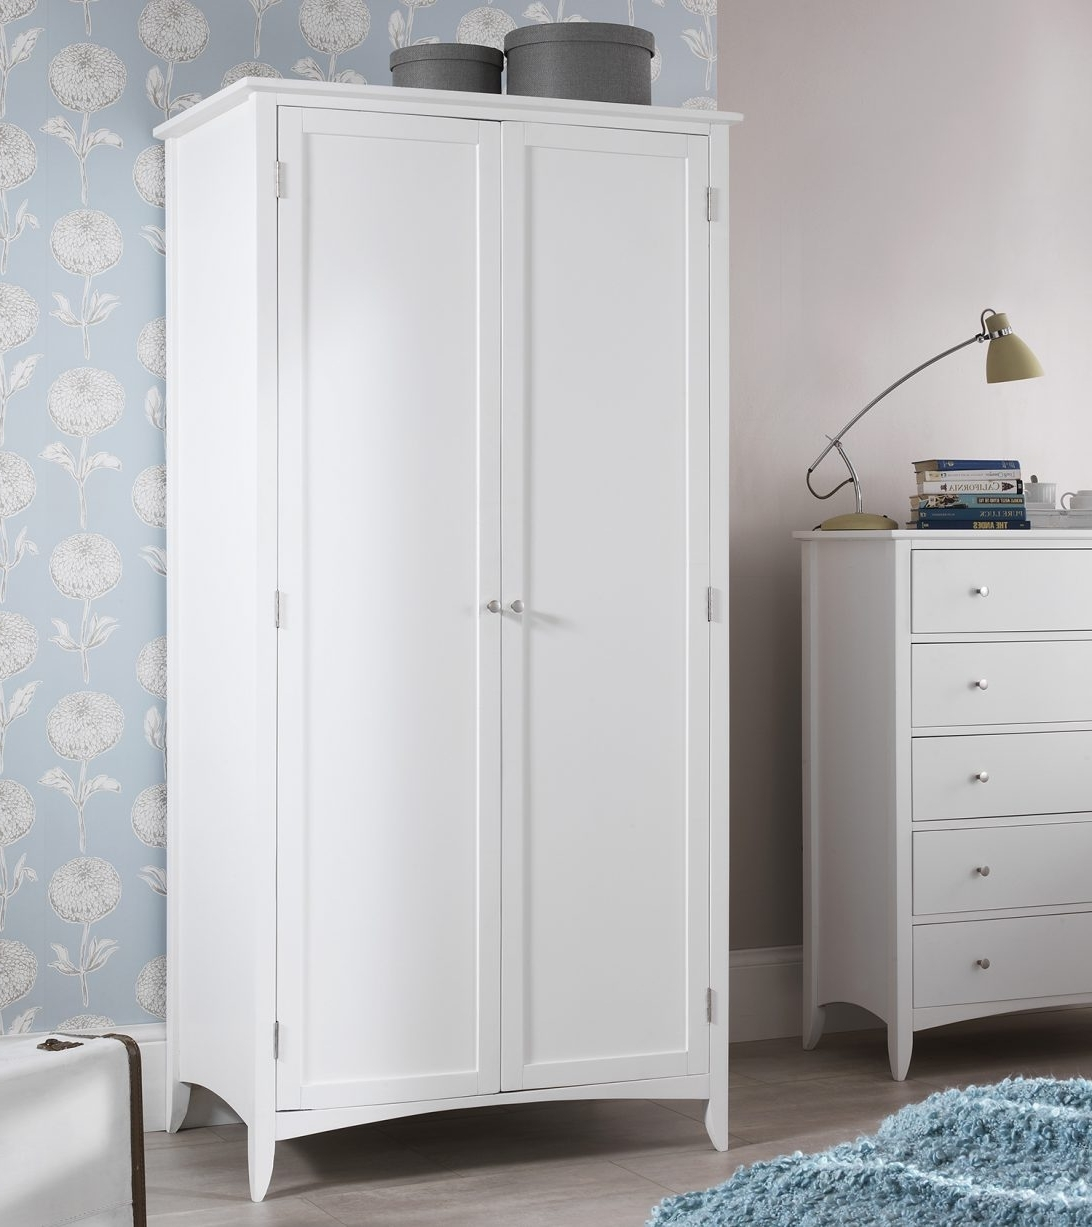 White Corner Wardrobe With Drawers 3 Door And Mirror Shelves Throughout Well Known Double Wardrobes With Drawers And Shelves (View 14 of 15)